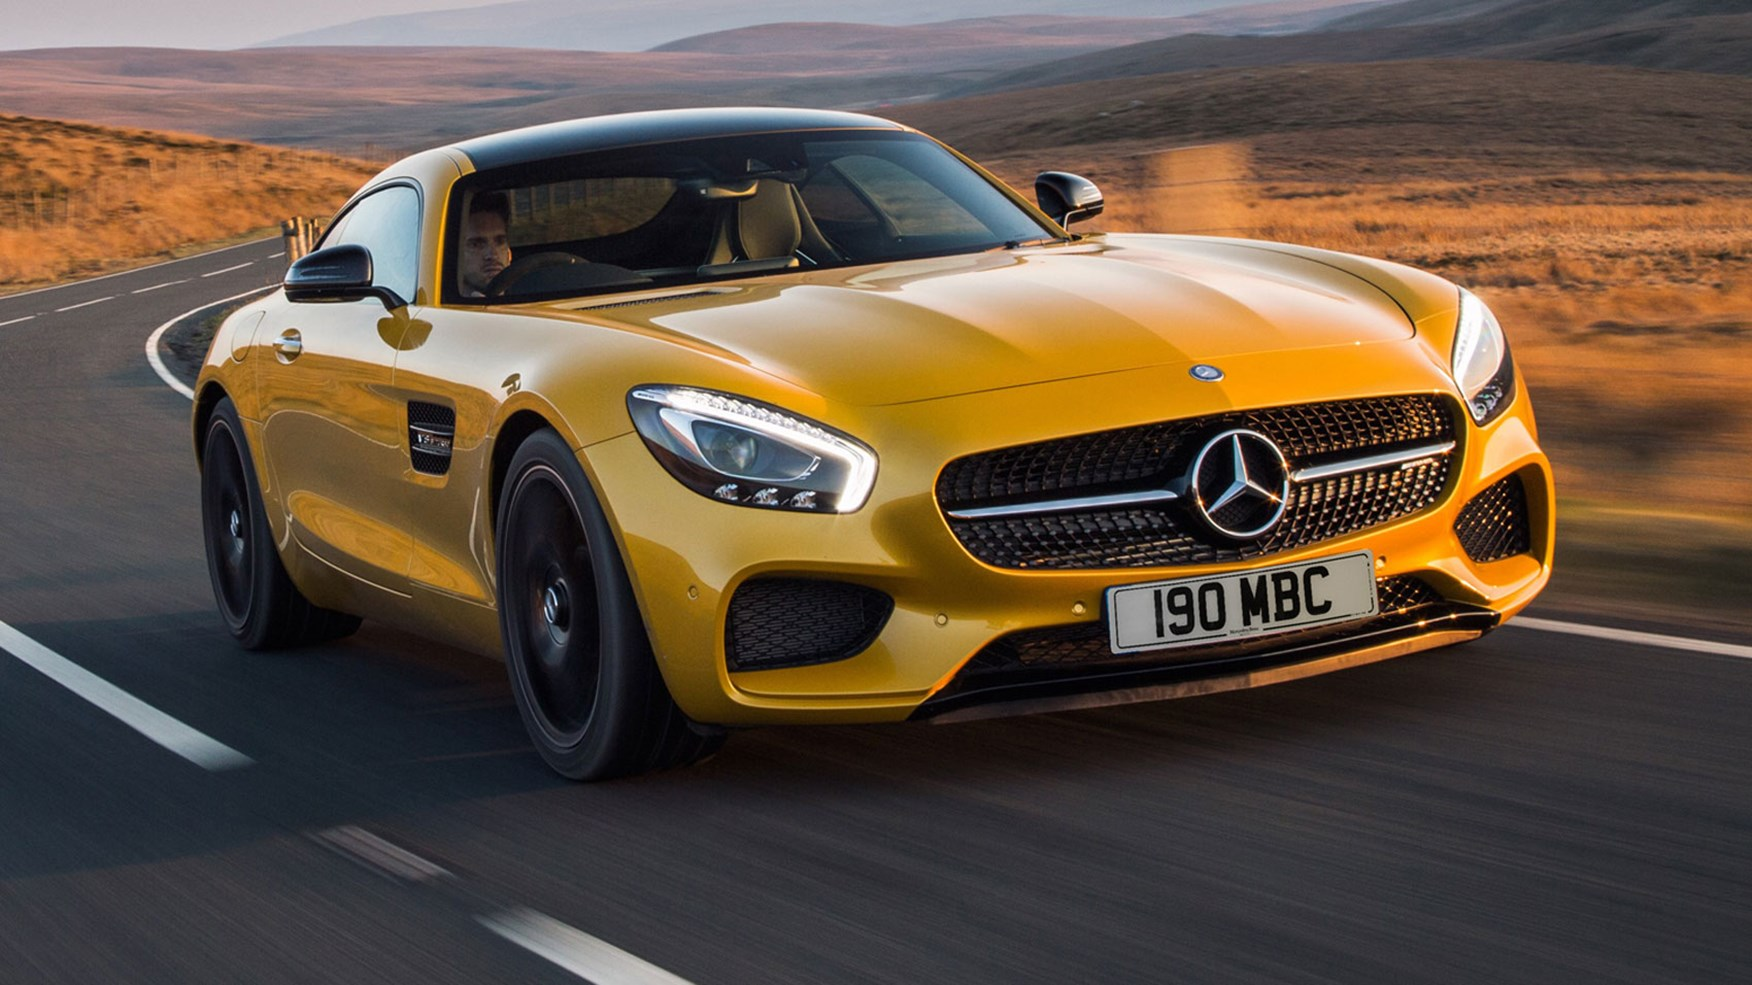 Mercedes Benz Sls Amg Review >> Mercedes-AMG GTS (2015) review by CAR Magazine